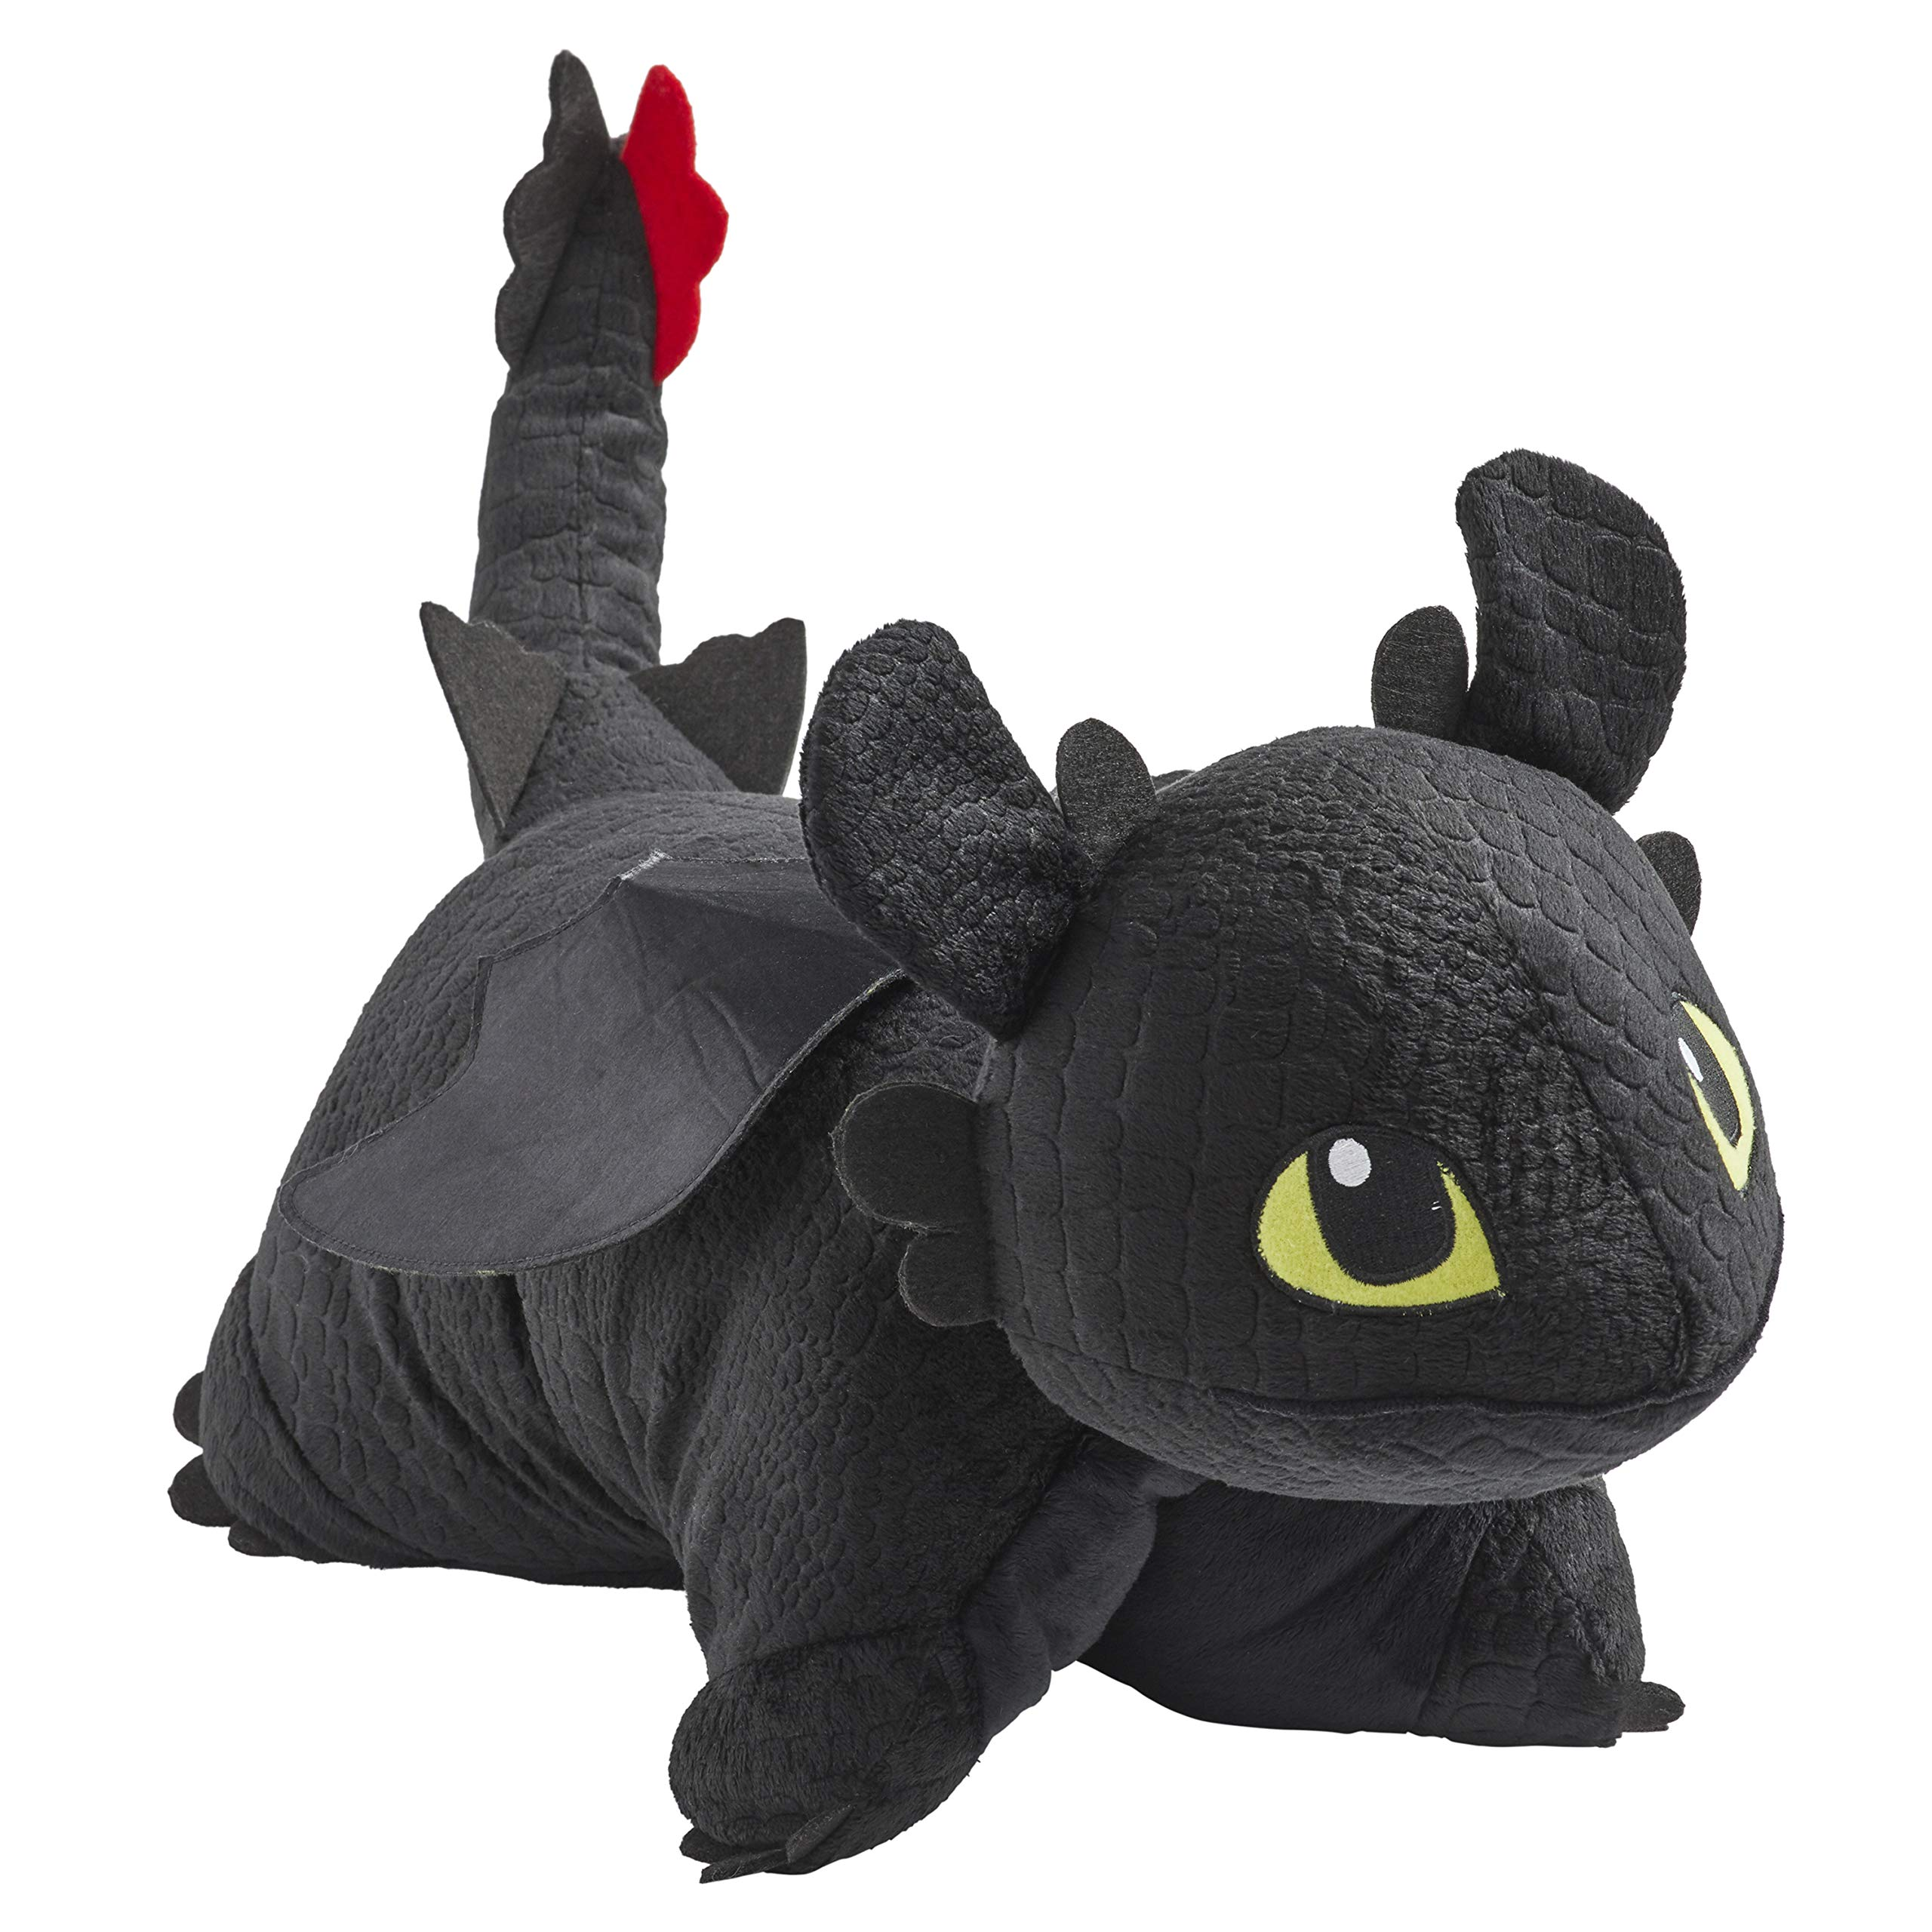 Pillow Pets NBCUniversal How to Train Your Dragon Toothless 16'' Stuffed Animal Plush Toy by Pillow Pets